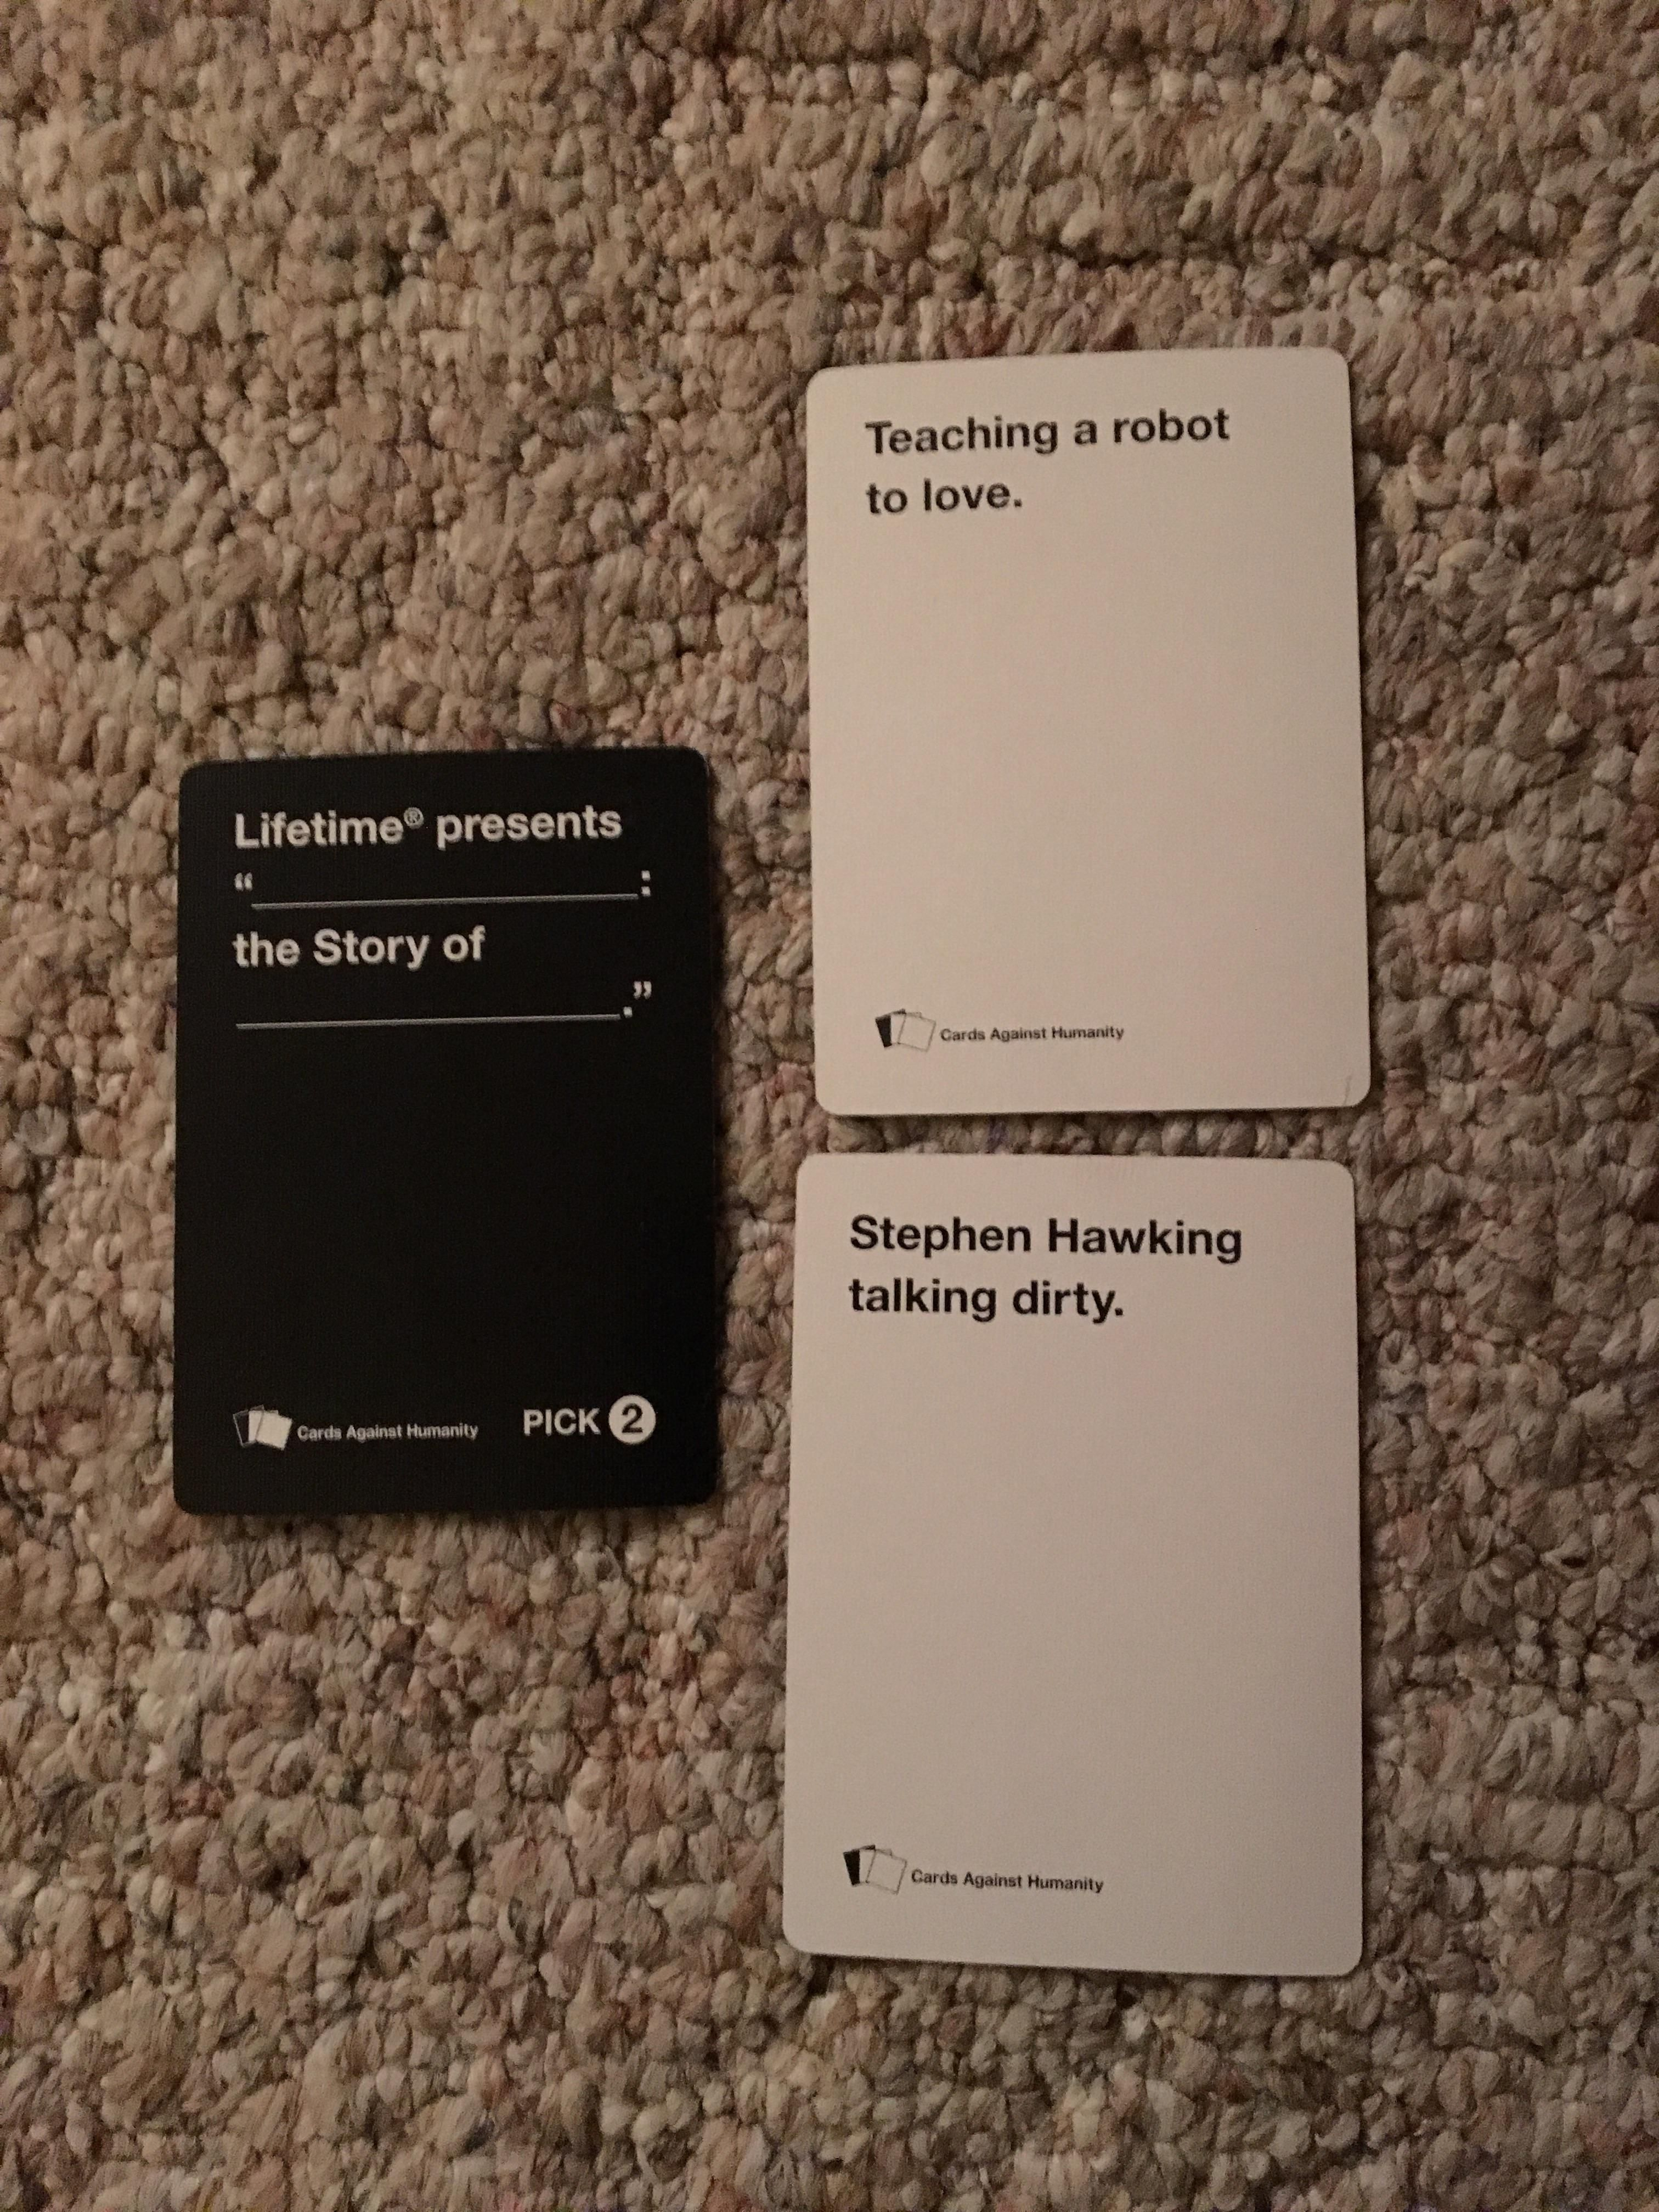 Probably the best CAH hand I have ever seen.